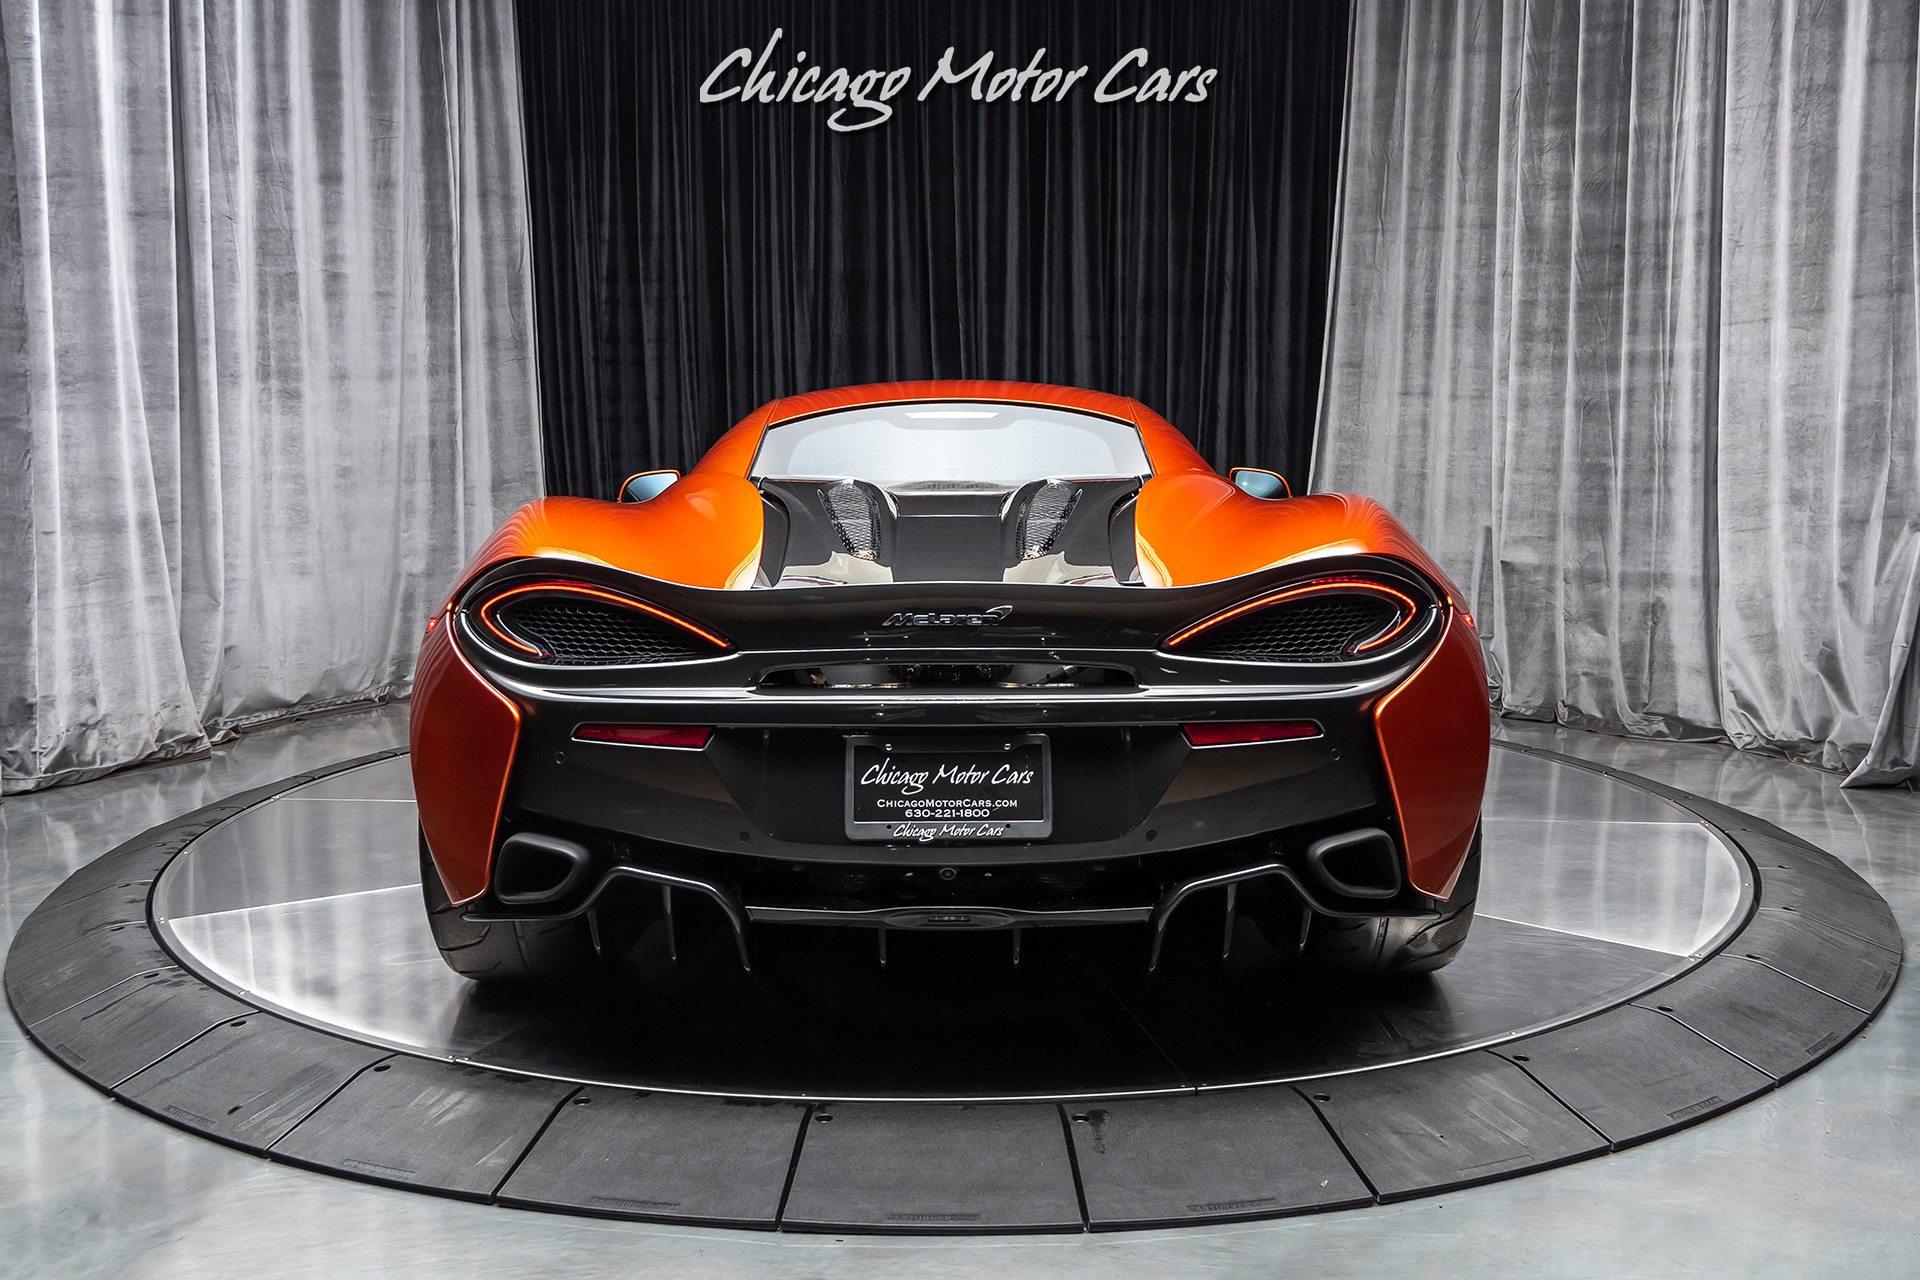 Used-2017-McLaren-570S-Coupe-Stealth-Finished-Wheels-Sports-Exhaust